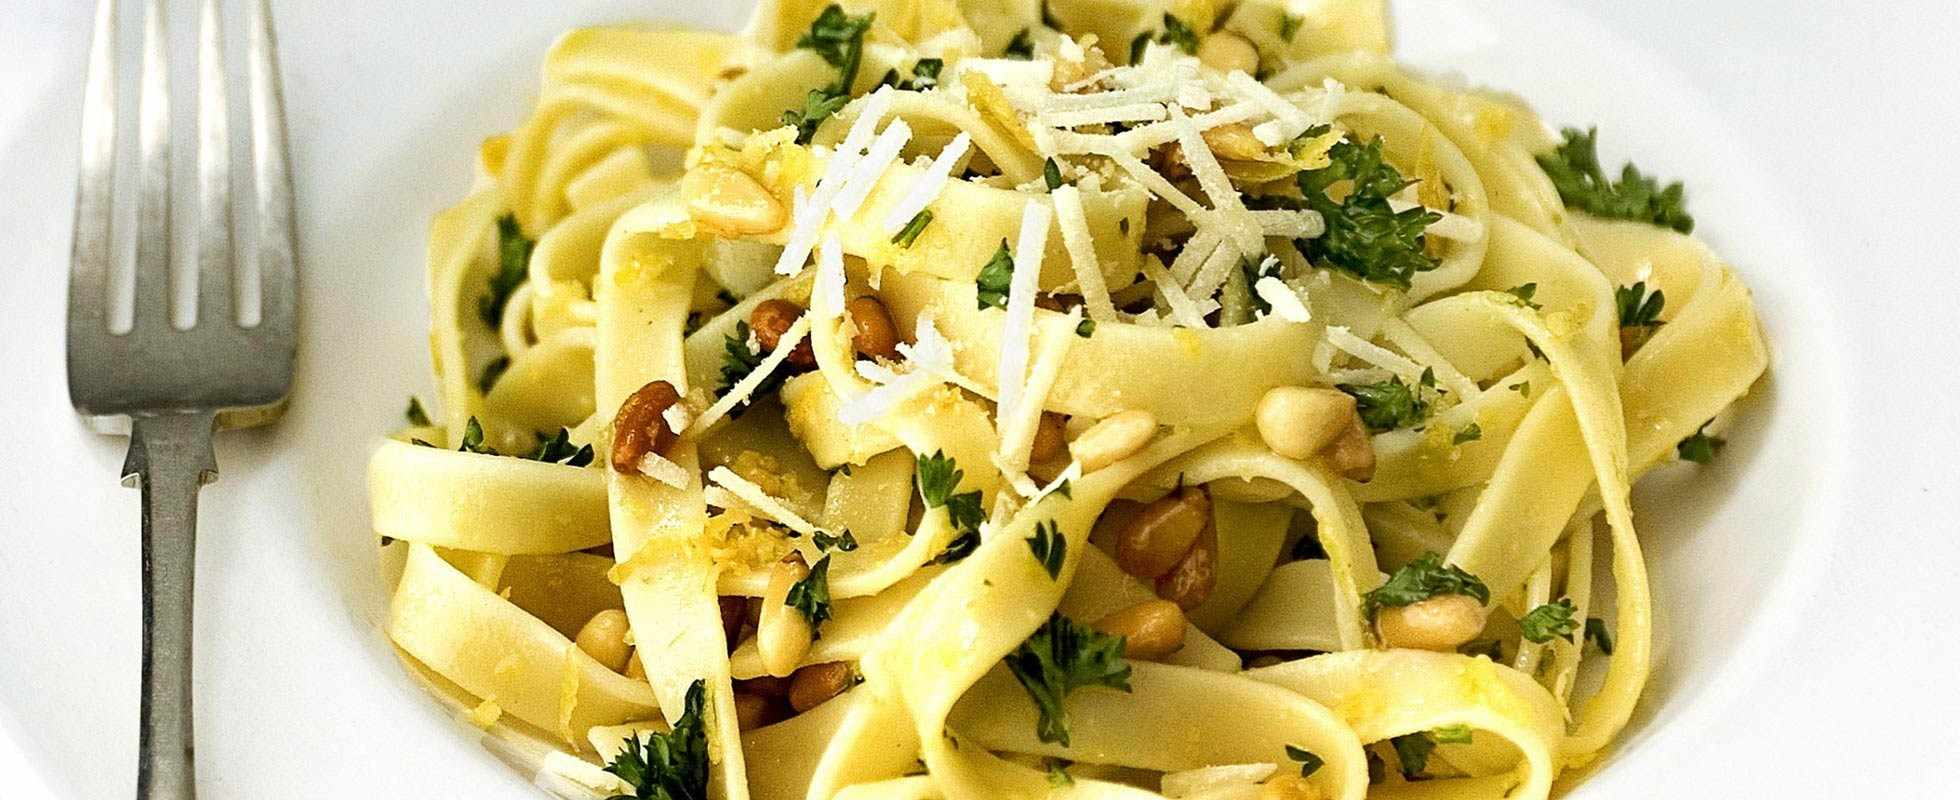 Tagliatelle with pecorino, lemon and pine nuts